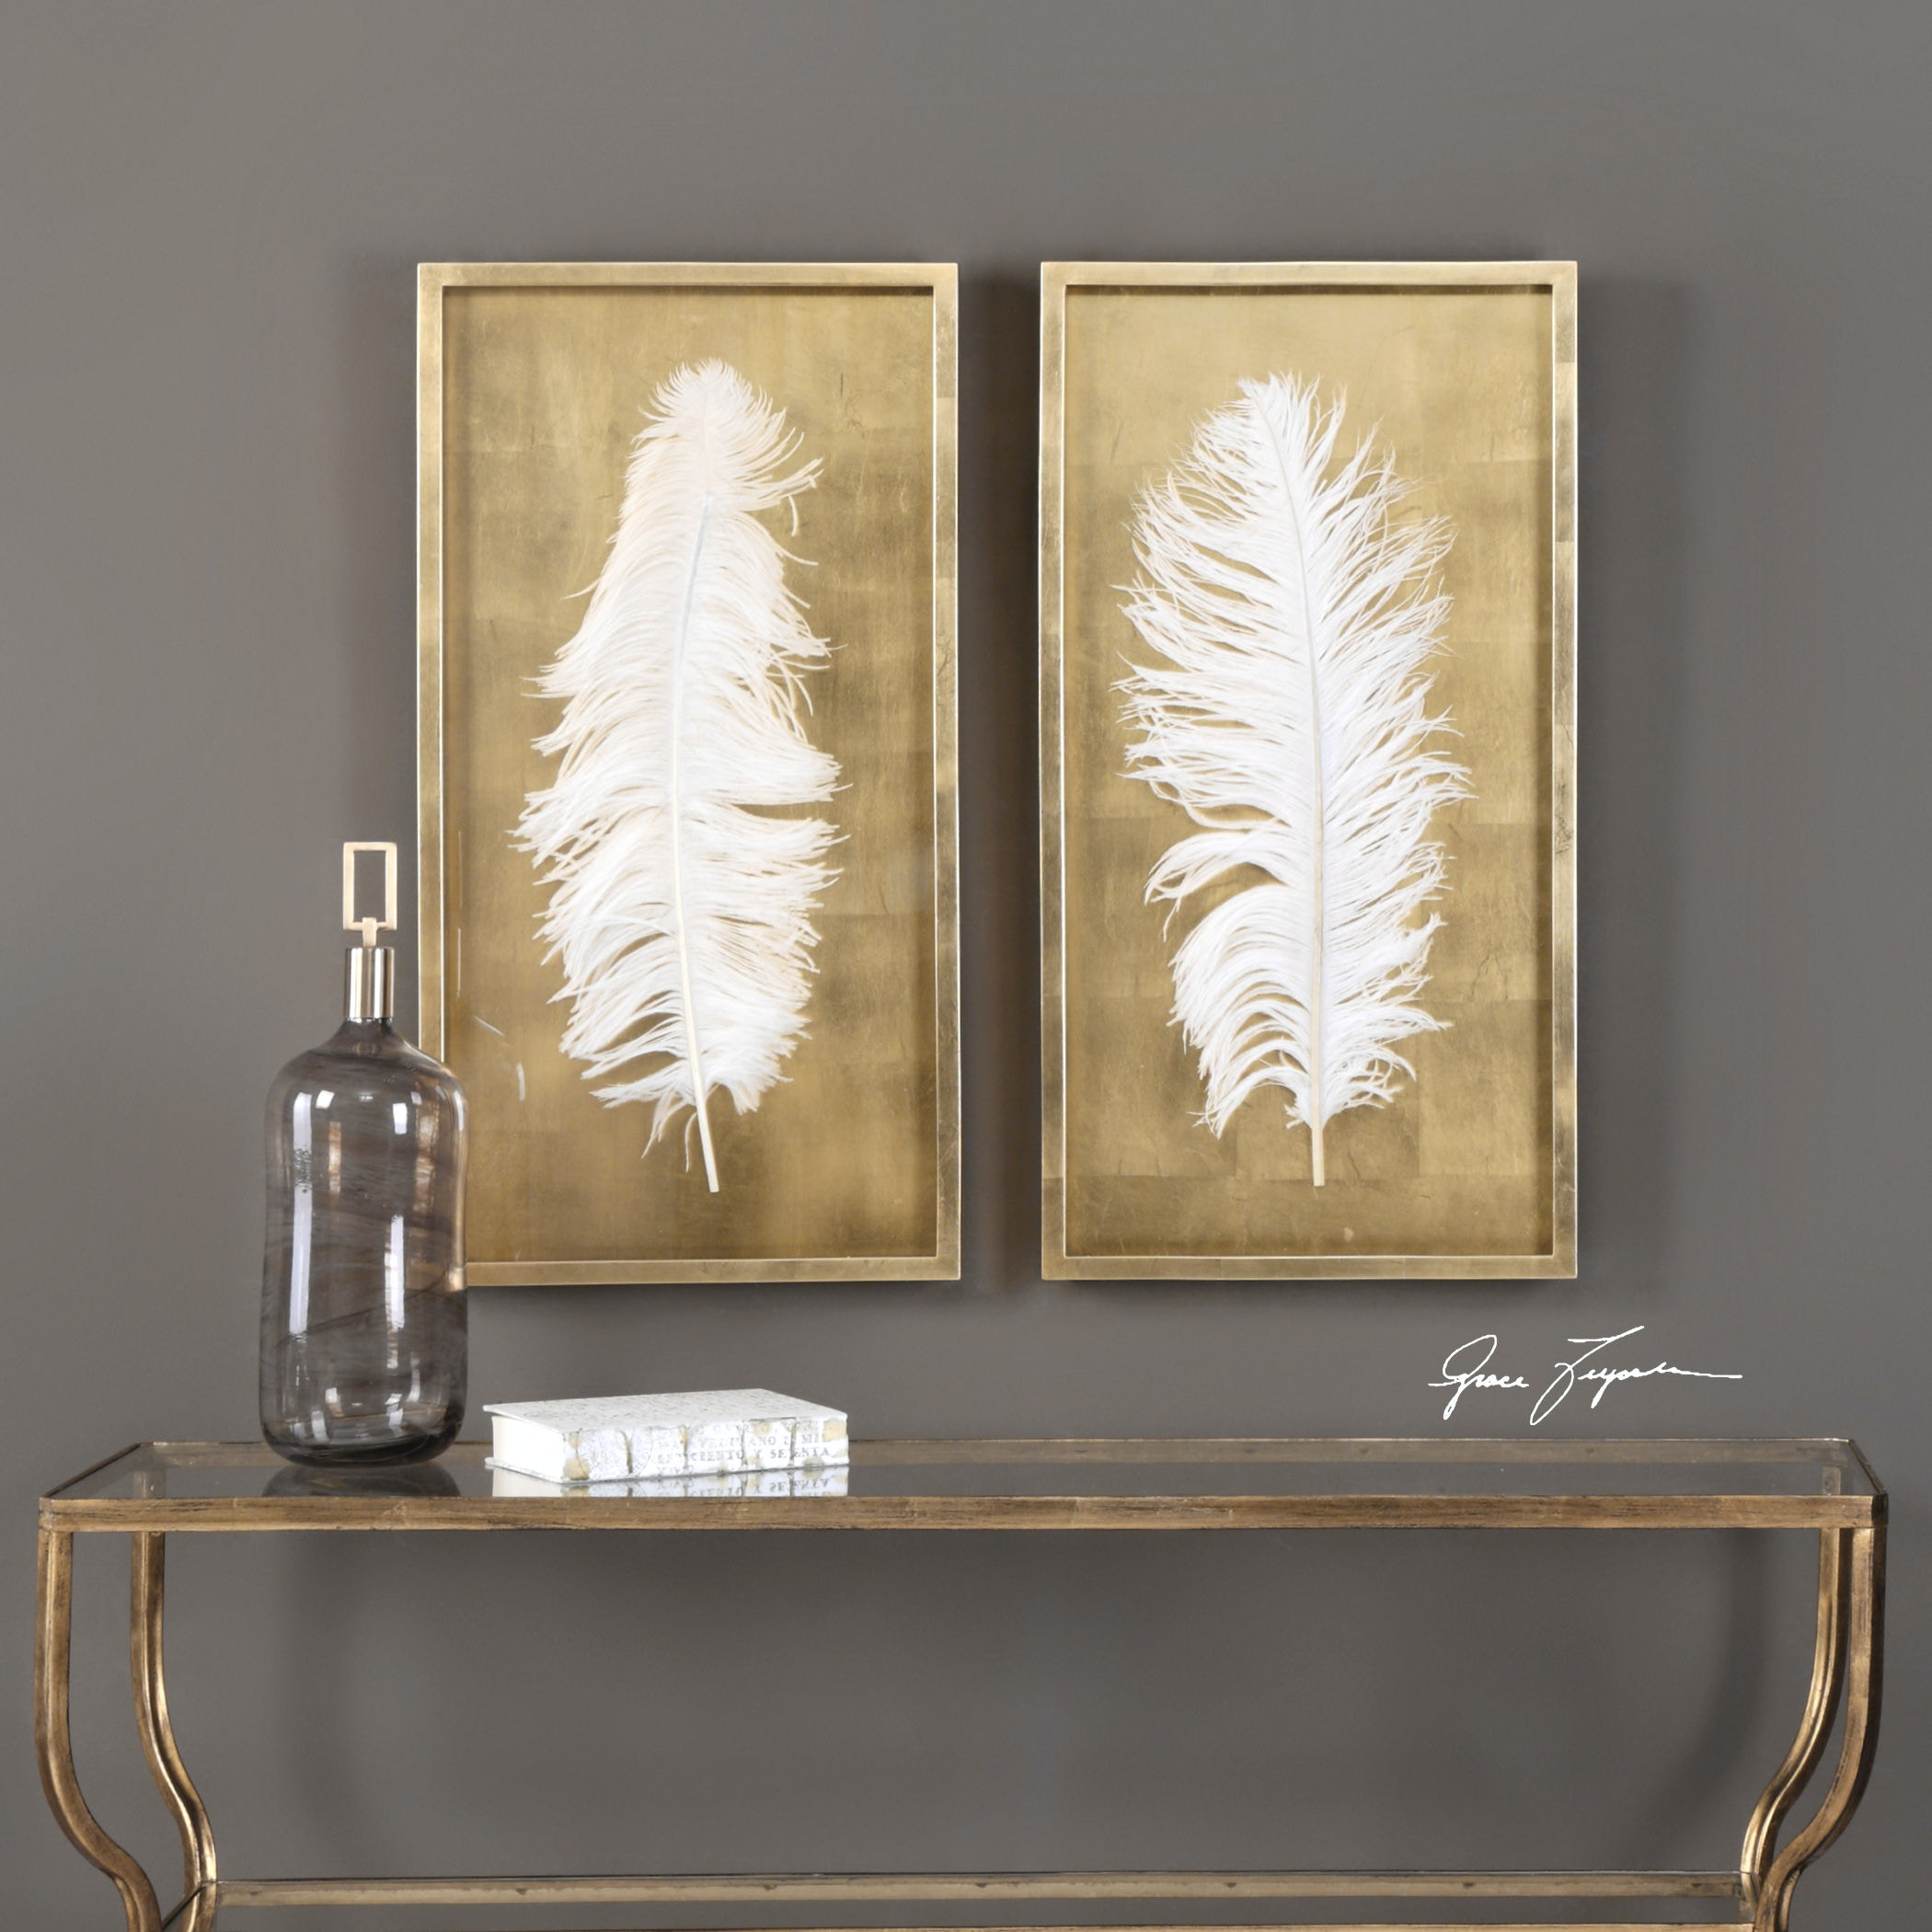 Charmant Uttermost White Feathers Gold Shadow Box S/2 04057